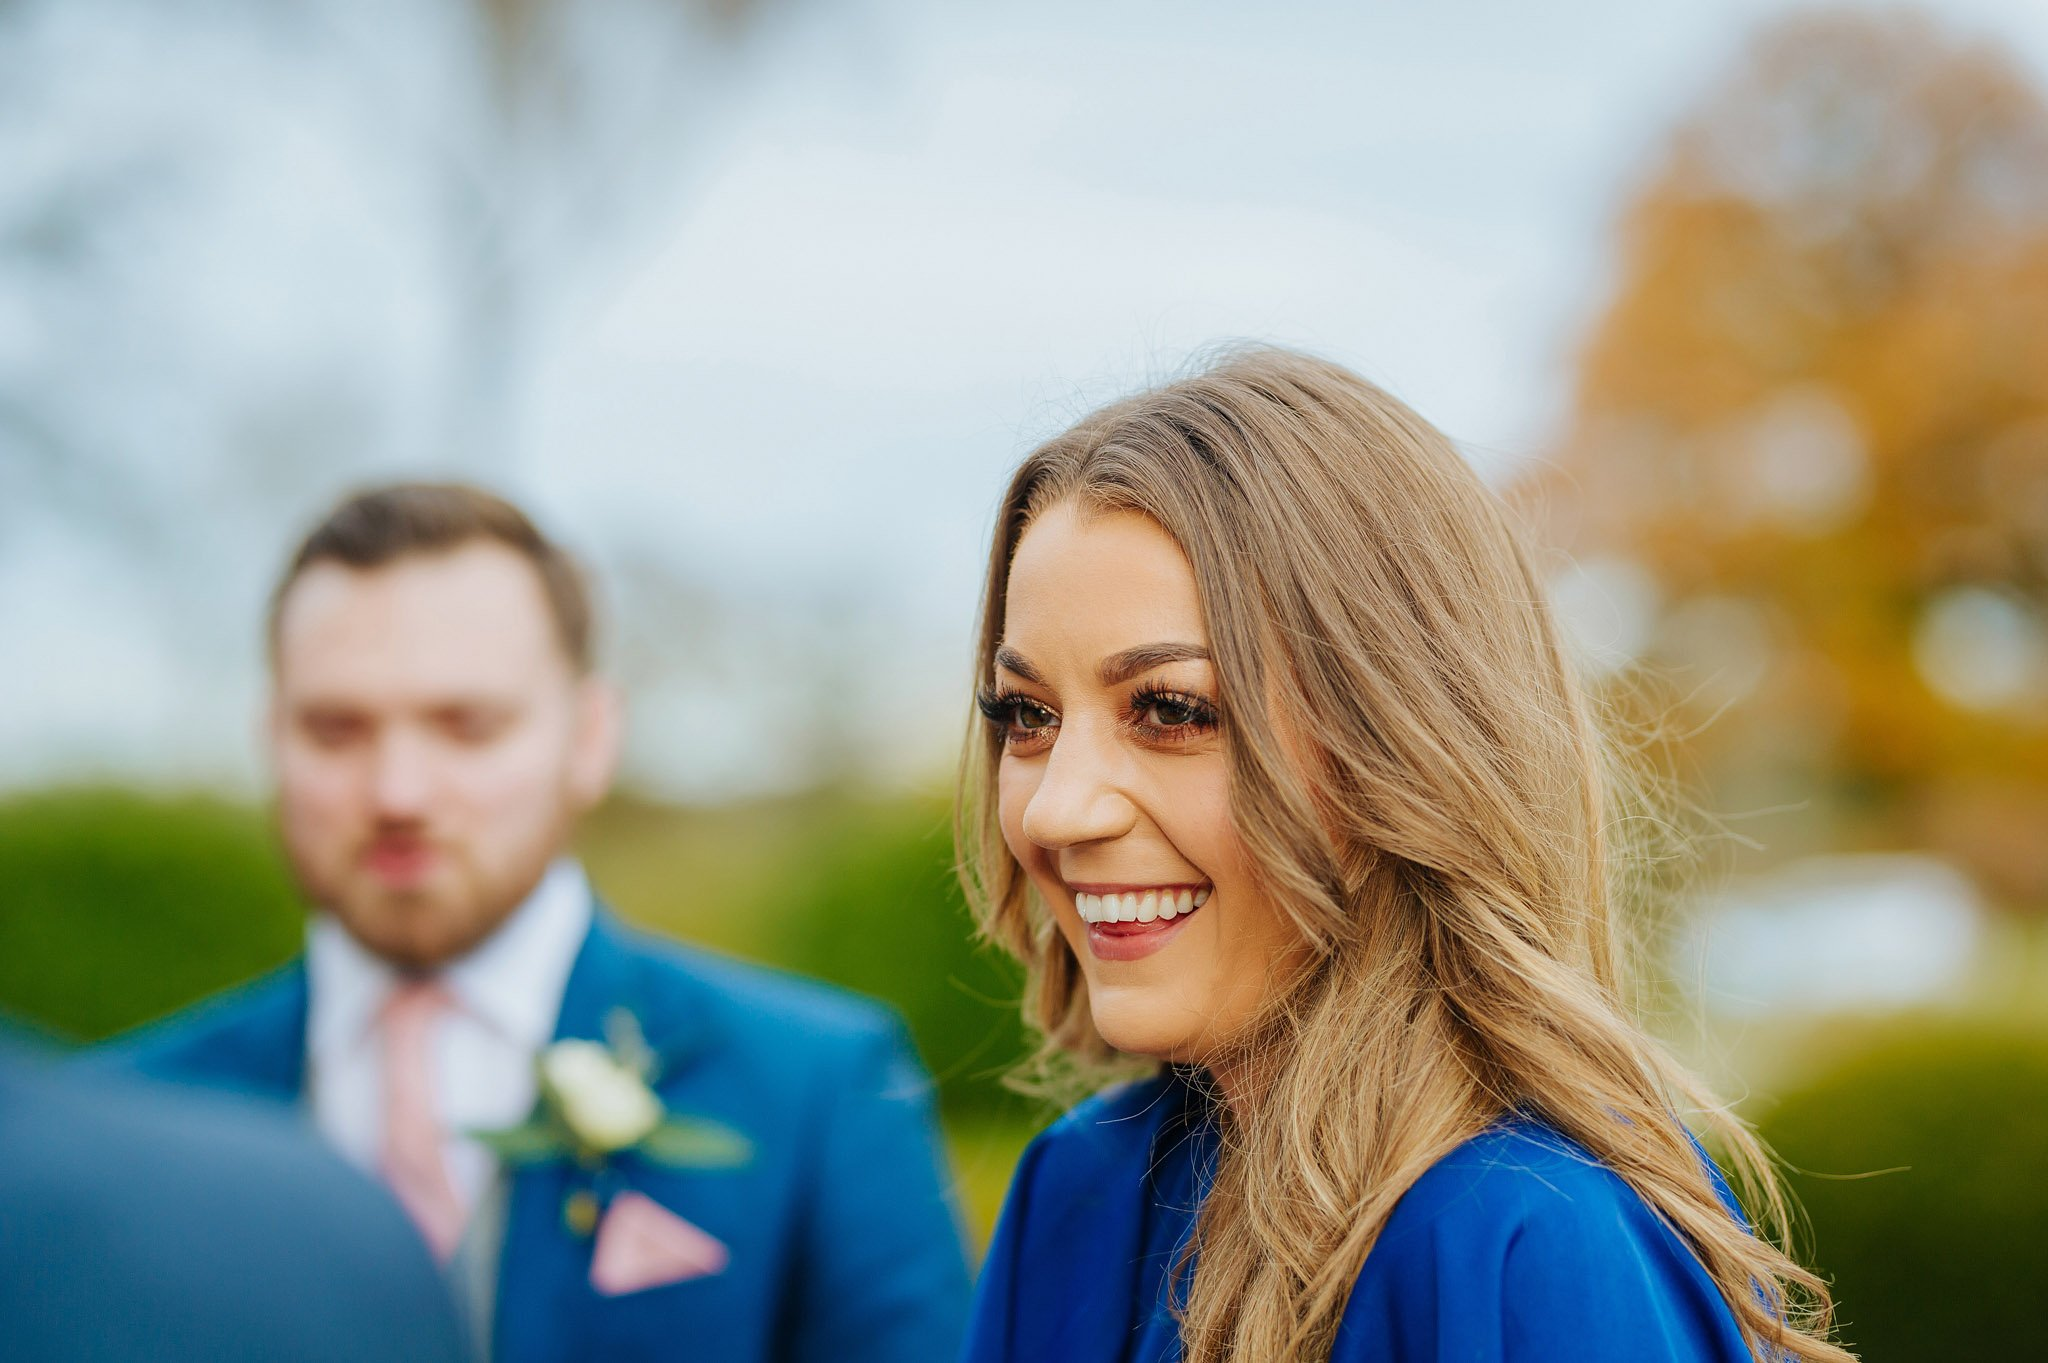 Lemore Manor wedding, Herefordshire - West Midlands | Sadie + Ken 61